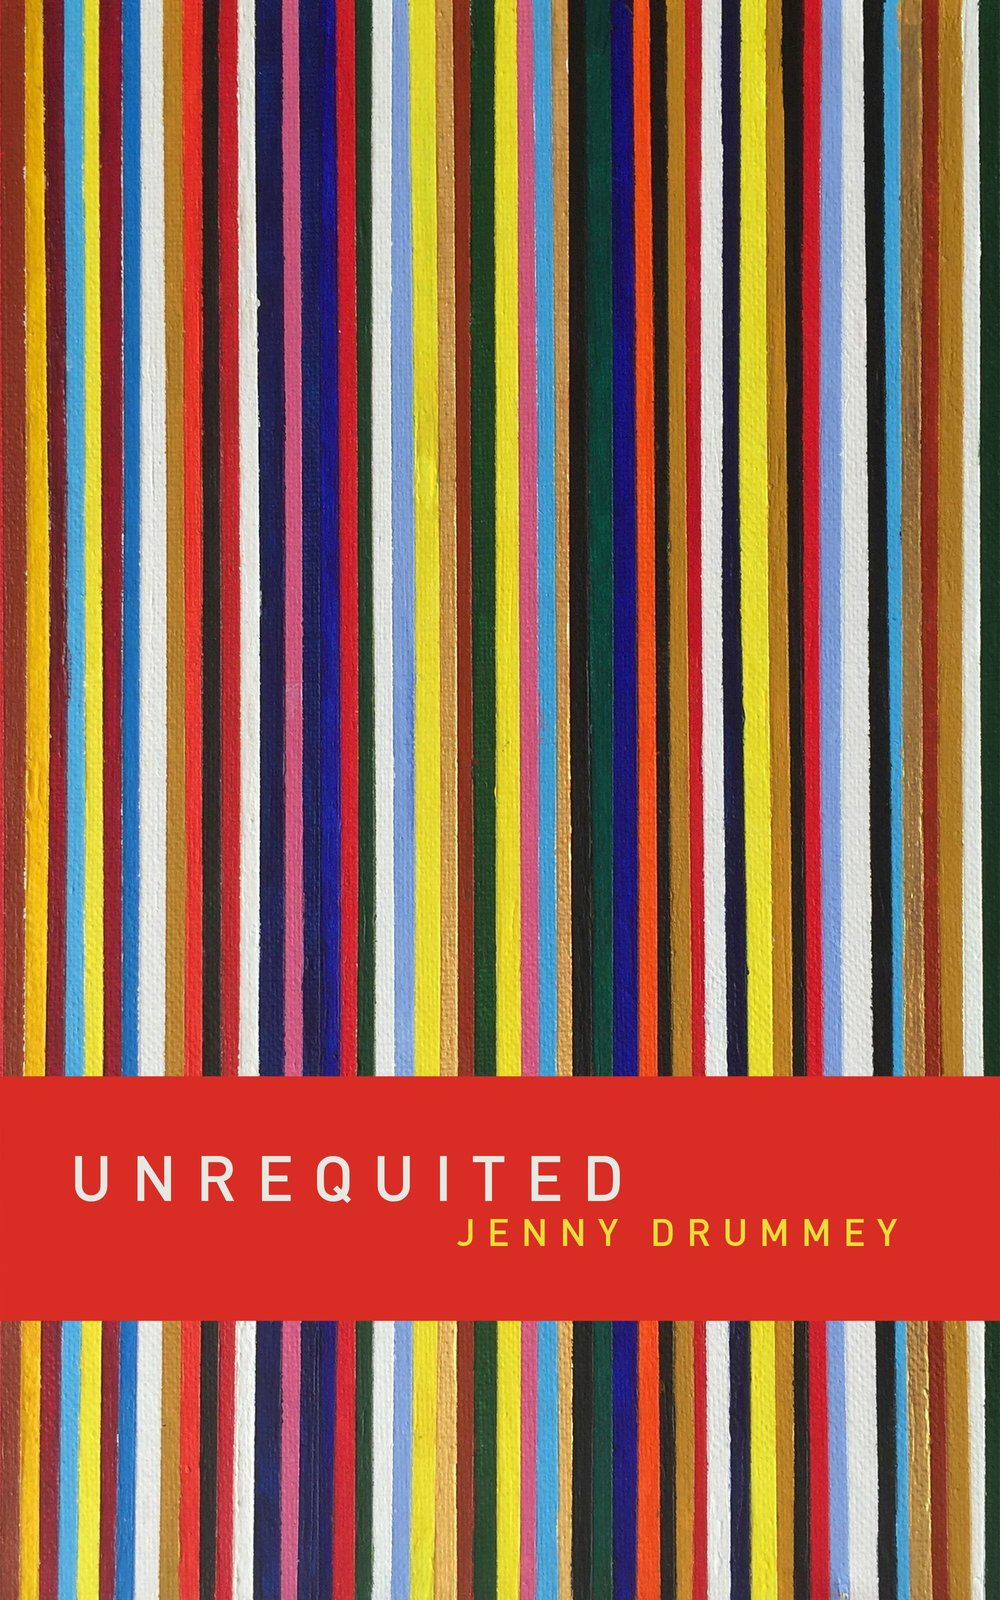 Unrequited, a novel